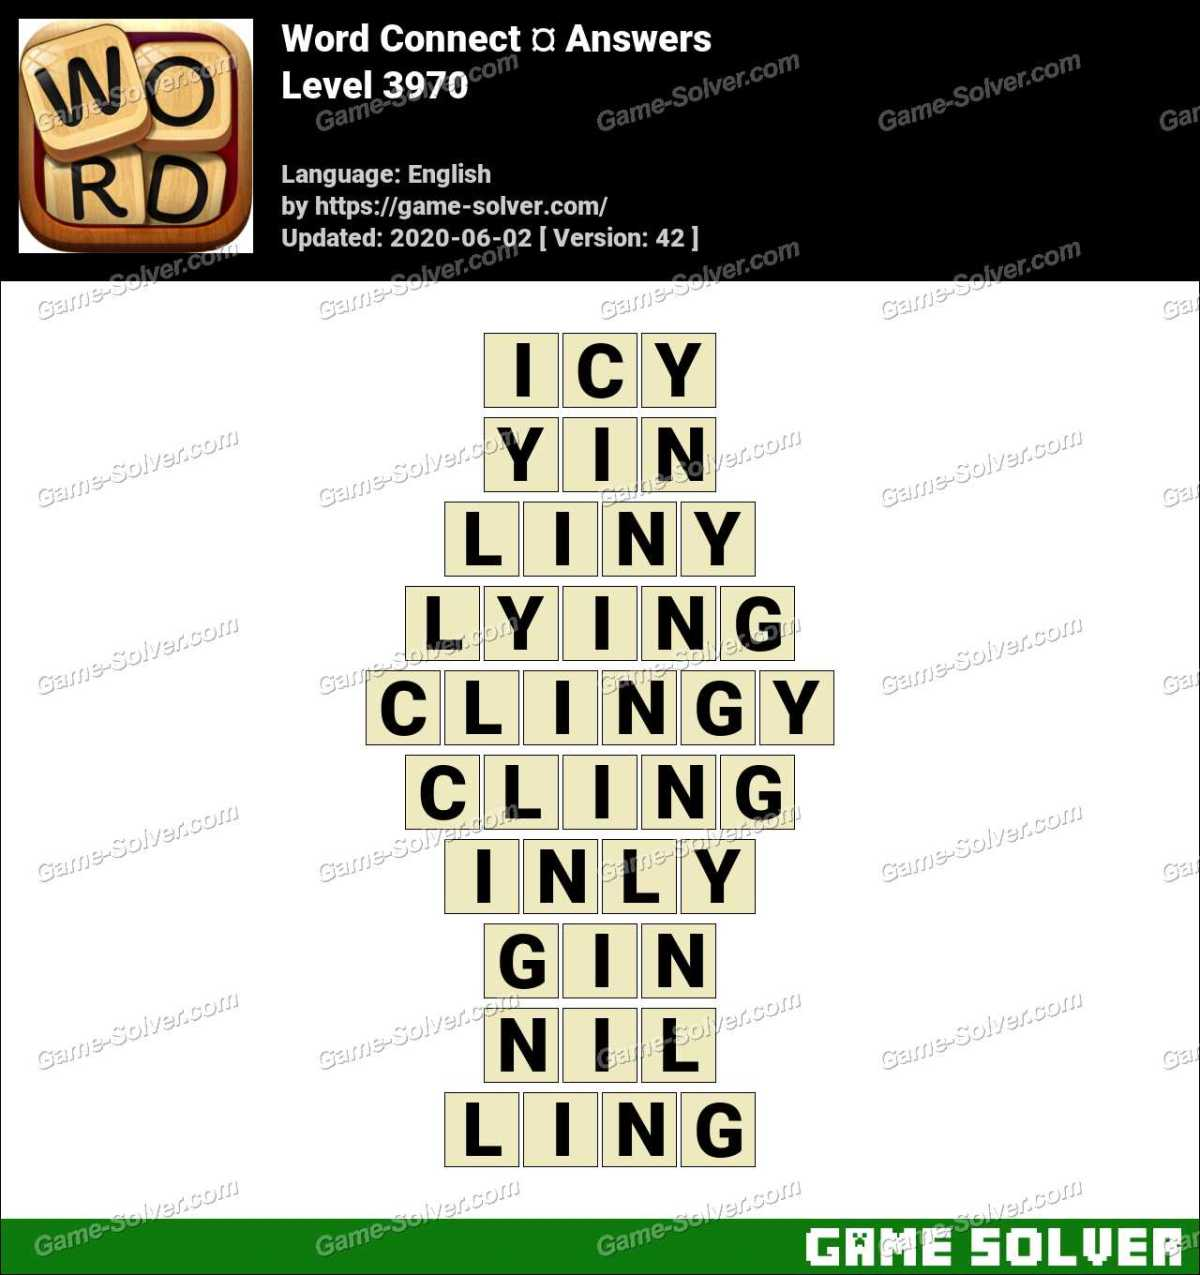 Word Connect Level 3970 Answers